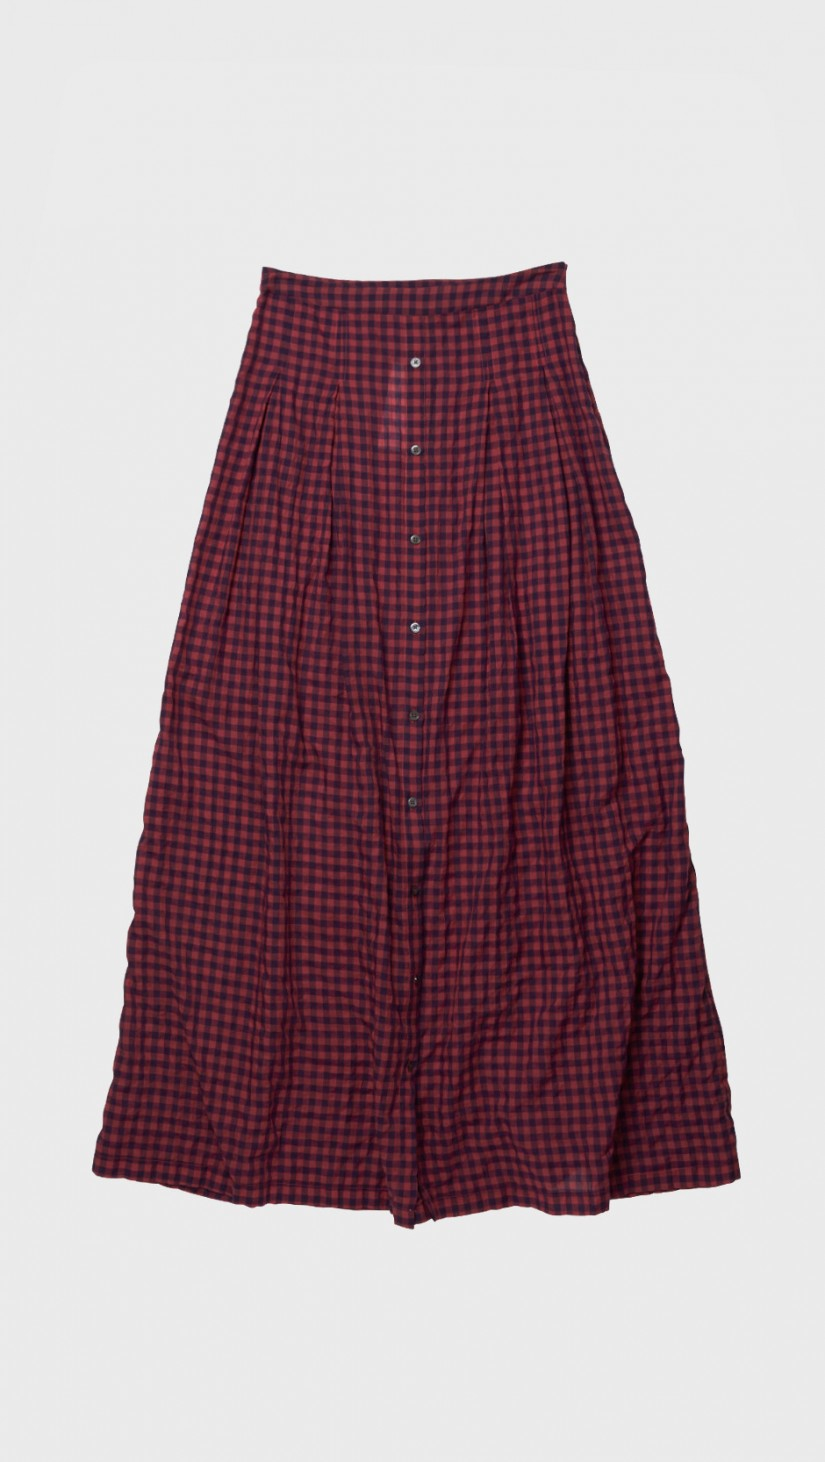 Tess Giberson Long Skirt W/ Placket in Red - Lyst